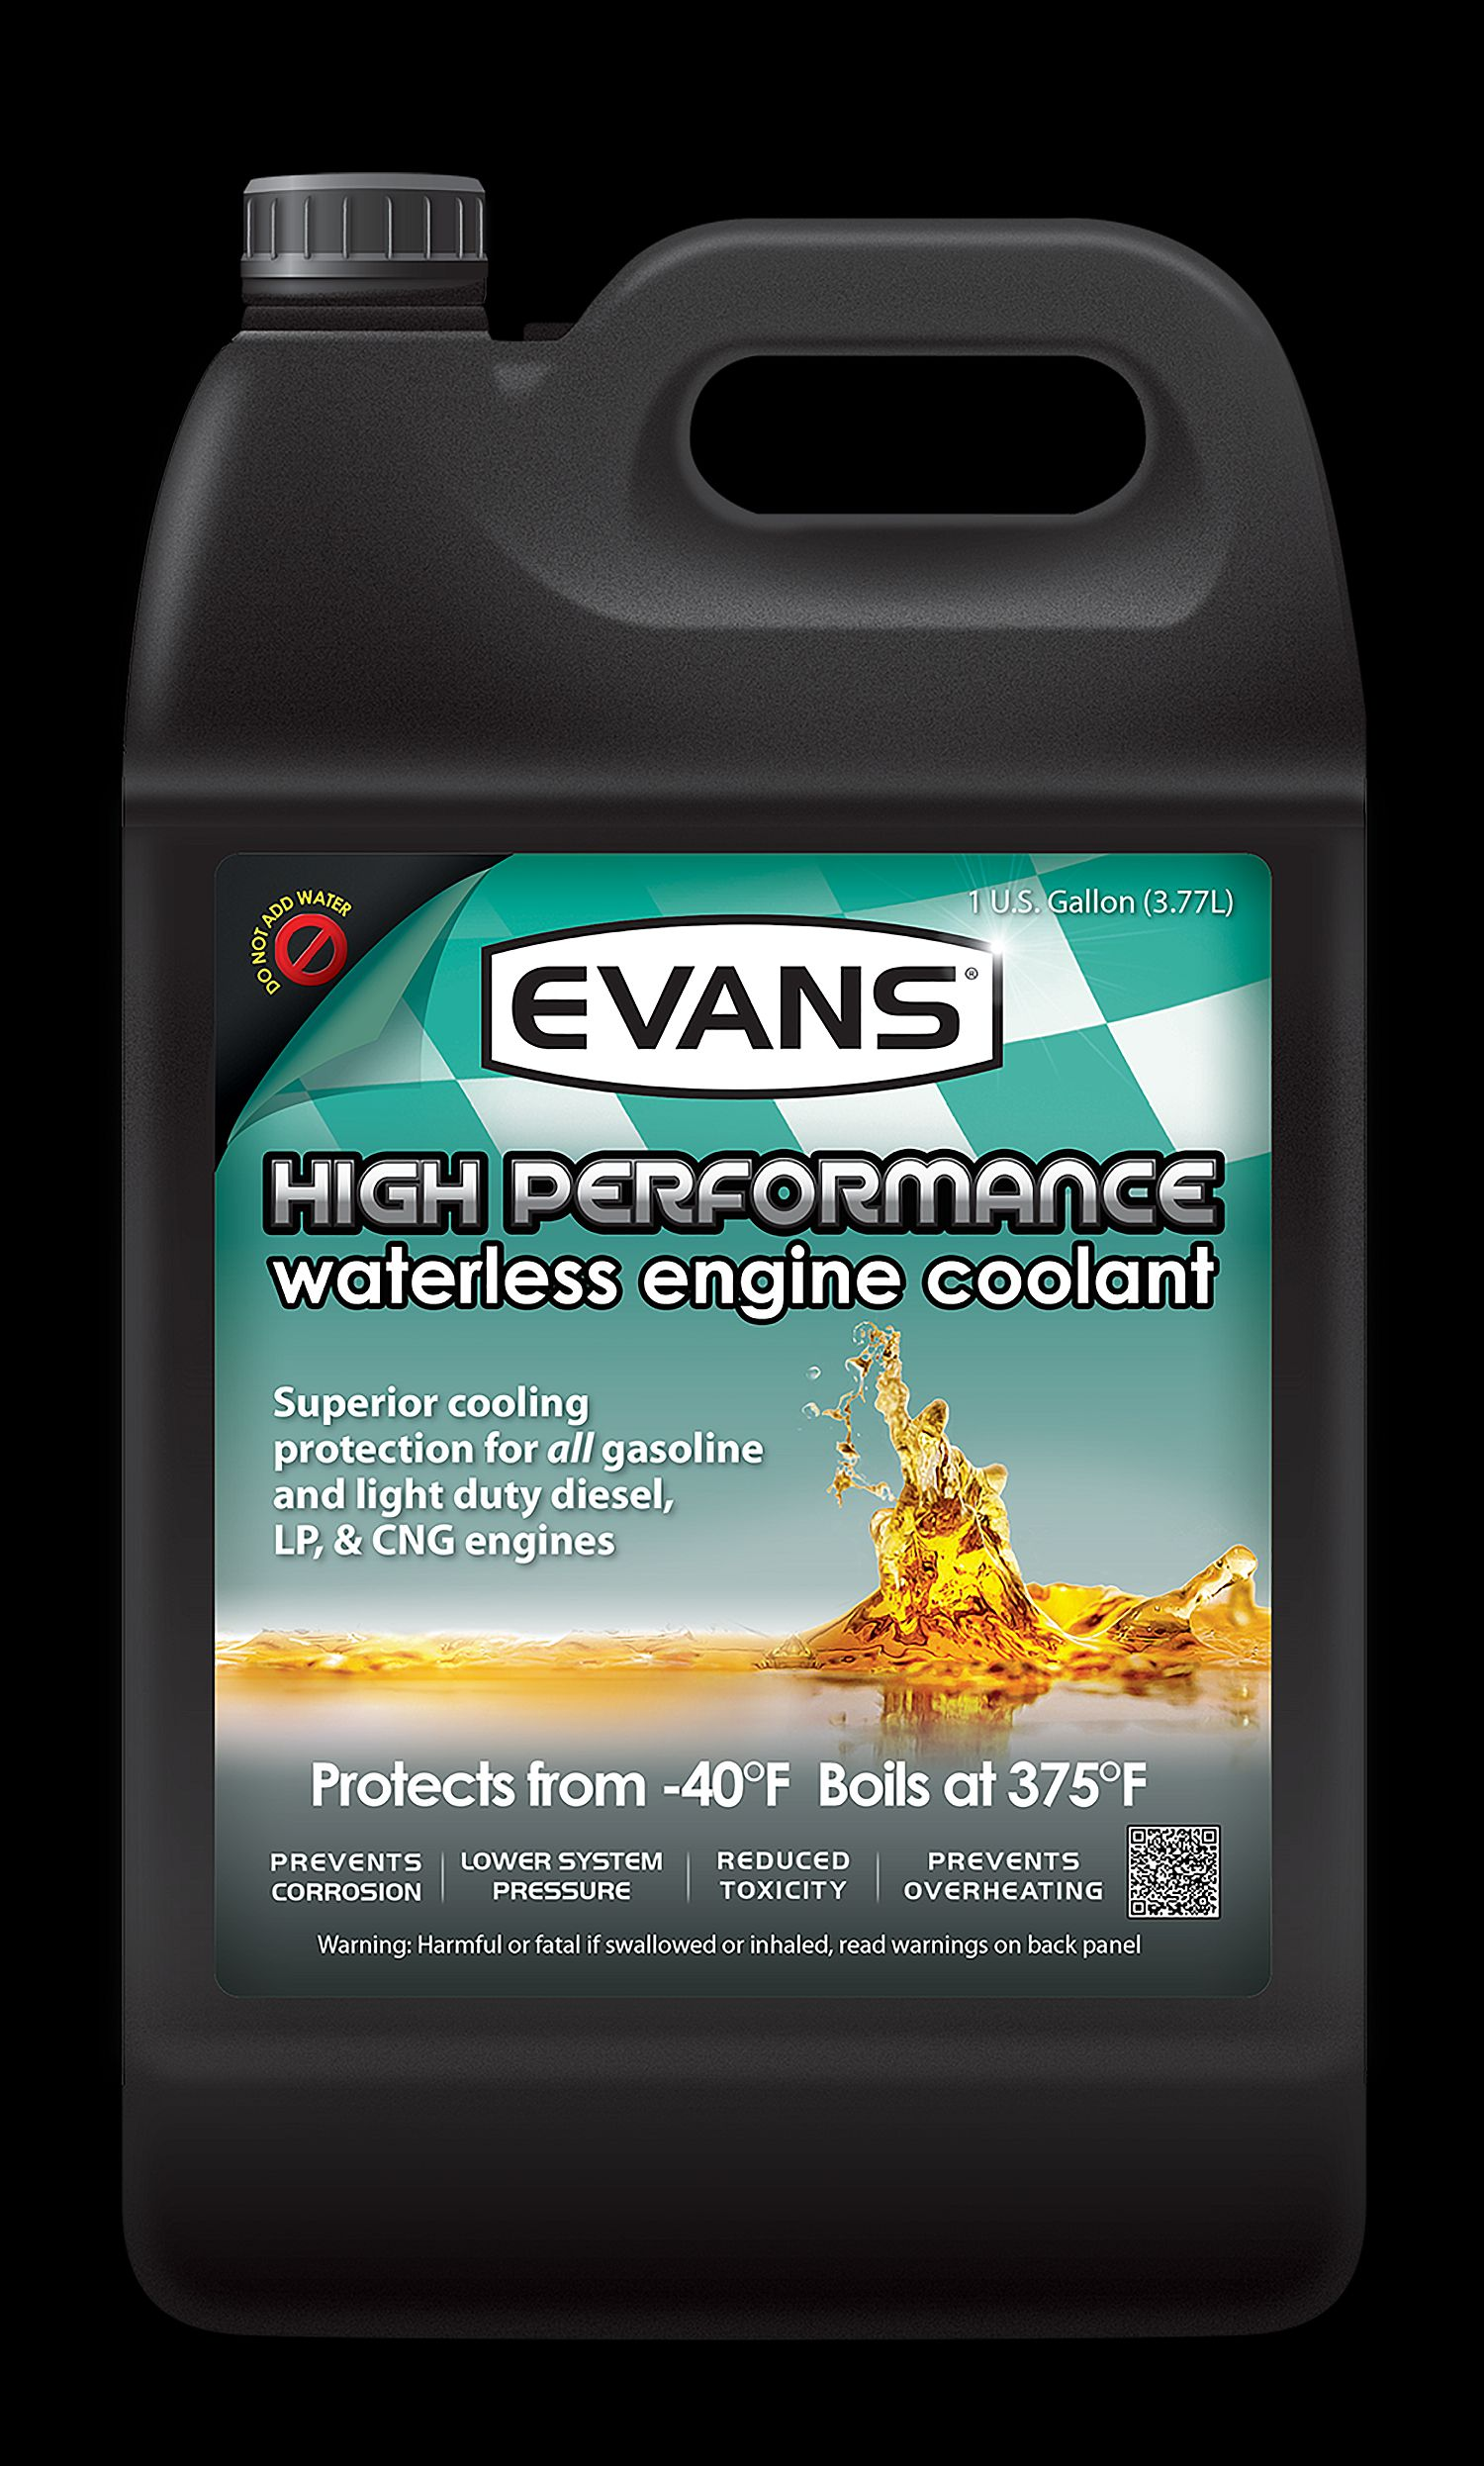 Ewc Ps 1 Evans Powersports Coolant 189 Litre Peps Auto Spares Engine Burn Hp High Performance Waterless